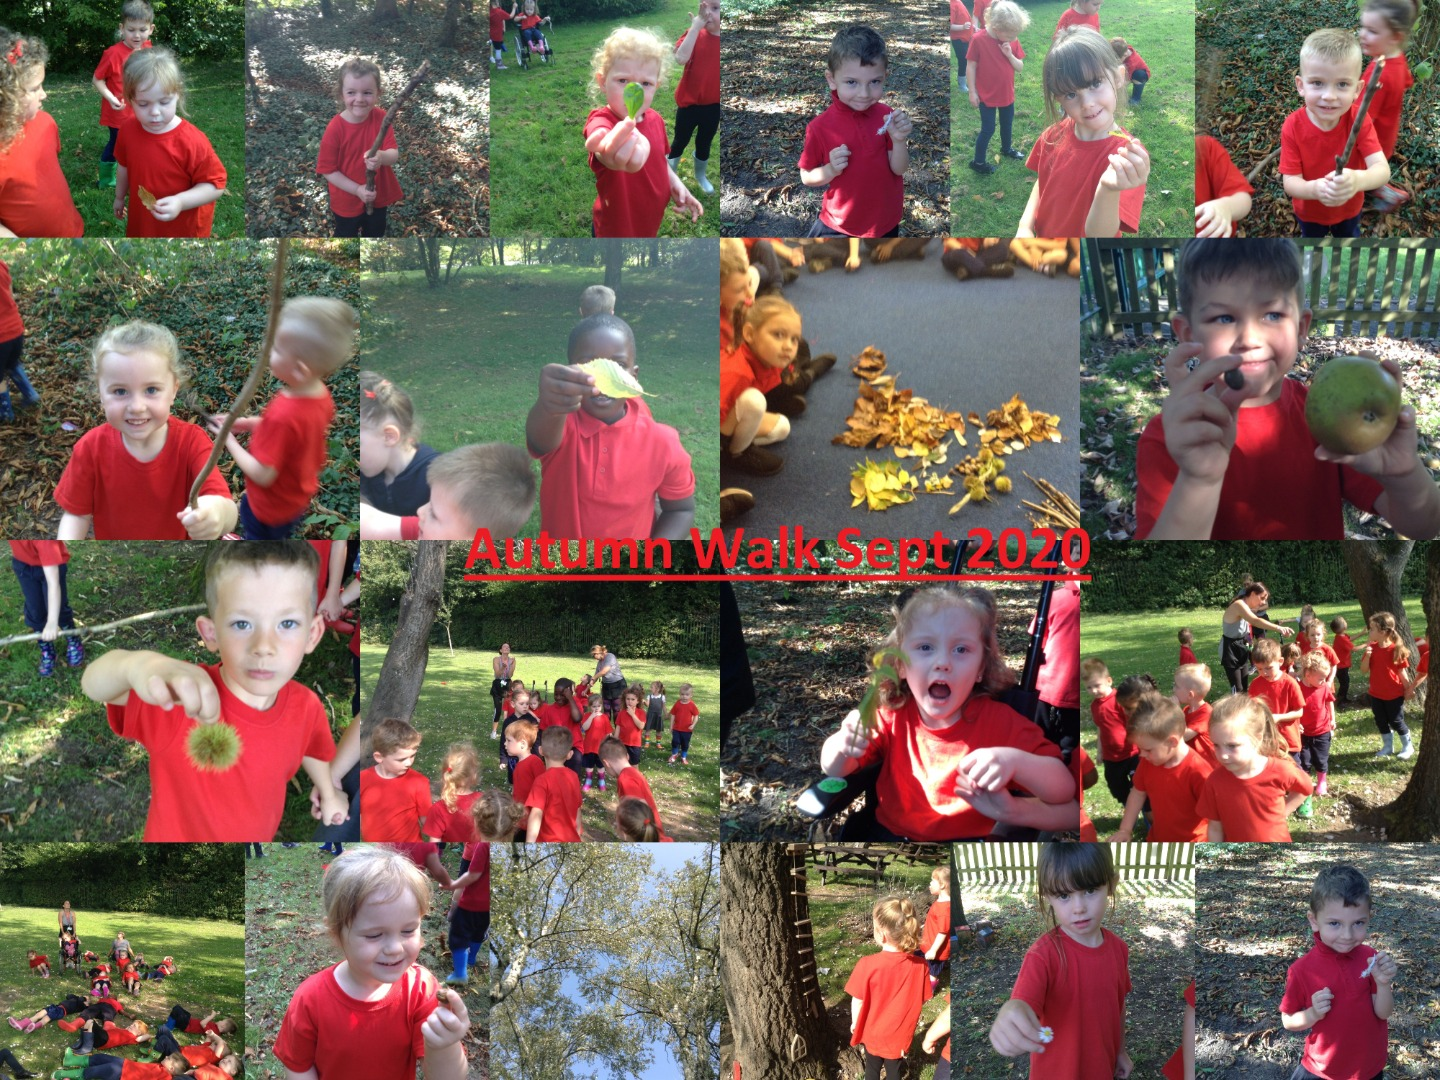 Autumn Walk Sept2020 Class CD.jpg